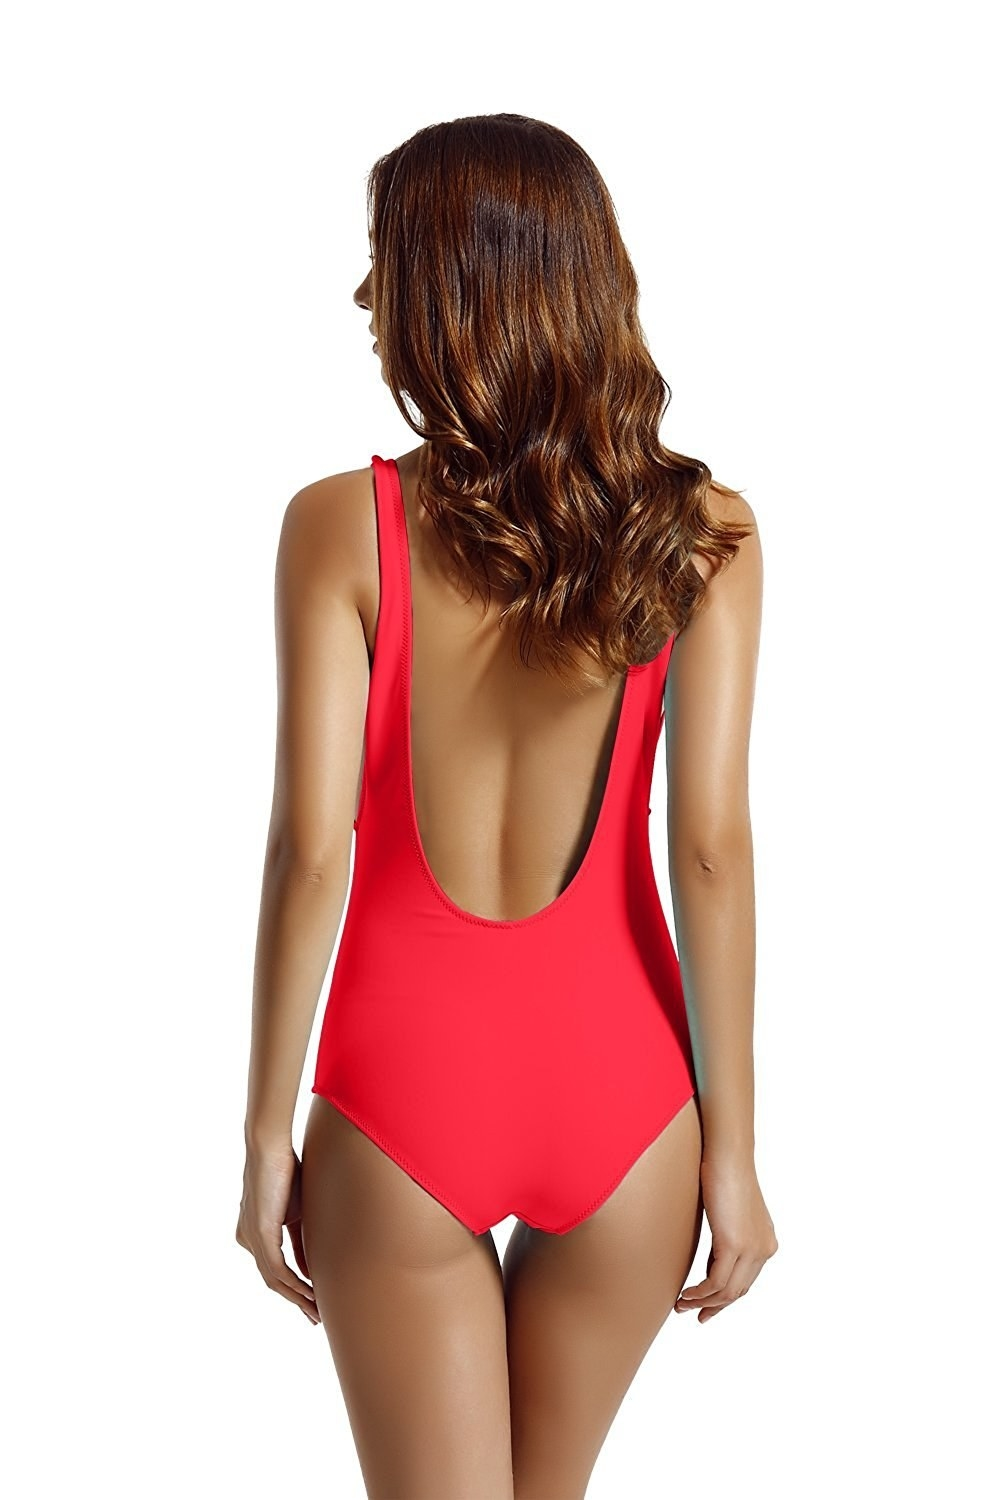 d26989523dbce 24 Stylish Women s Swimsuits You Won t Believe You Can Get On Amazon